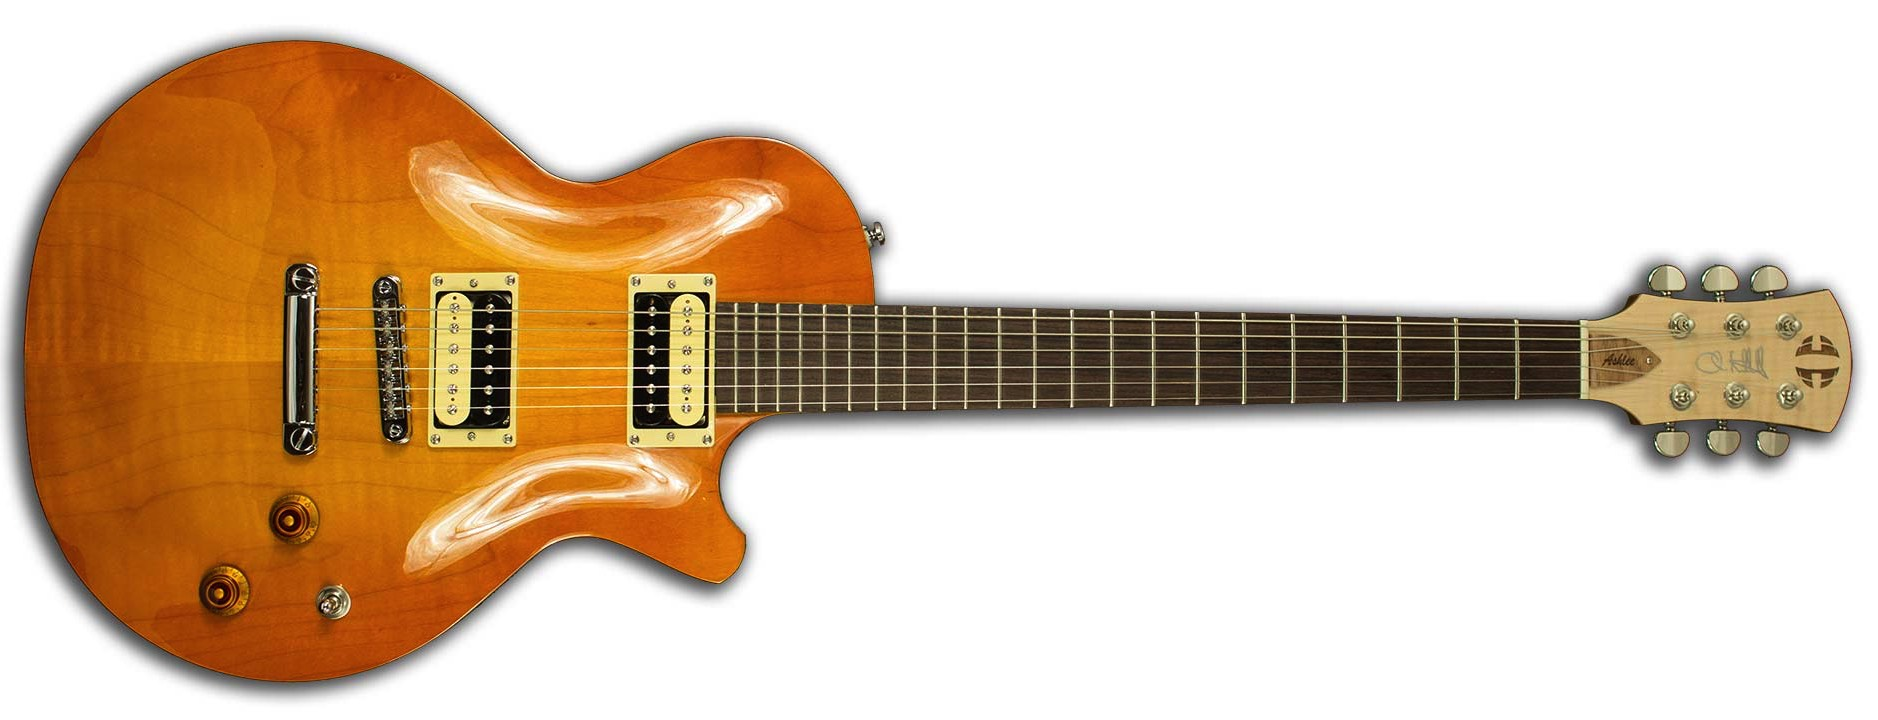 welcome to cmg guitars